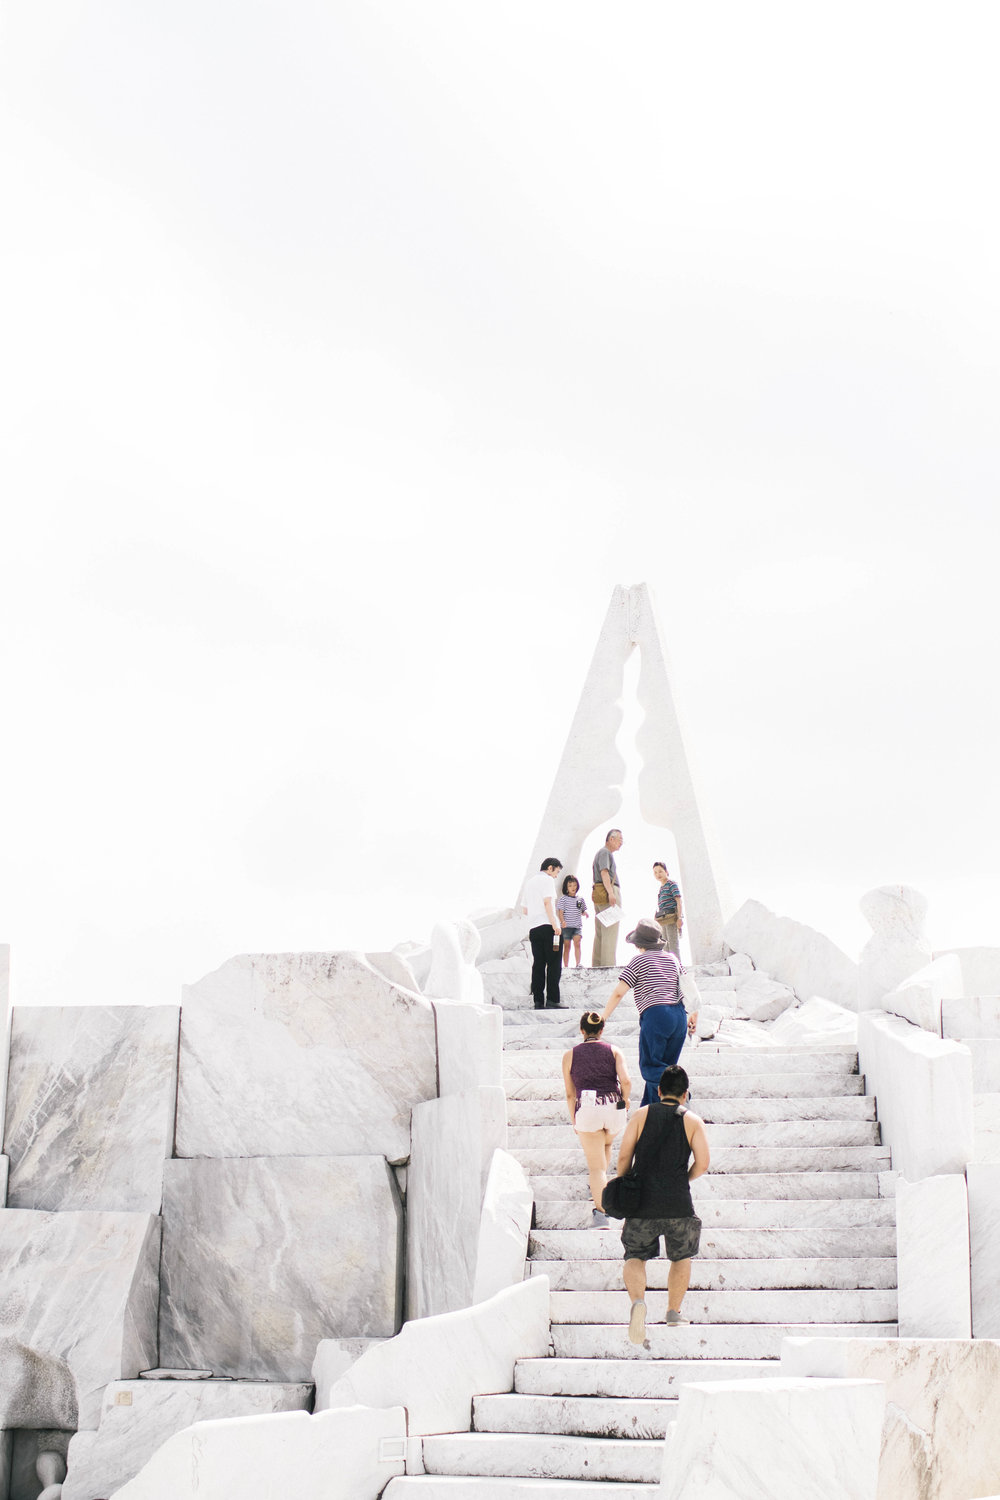 onomichi-white-marble-hill-of-hope-photos-by-samantha-look.jpg